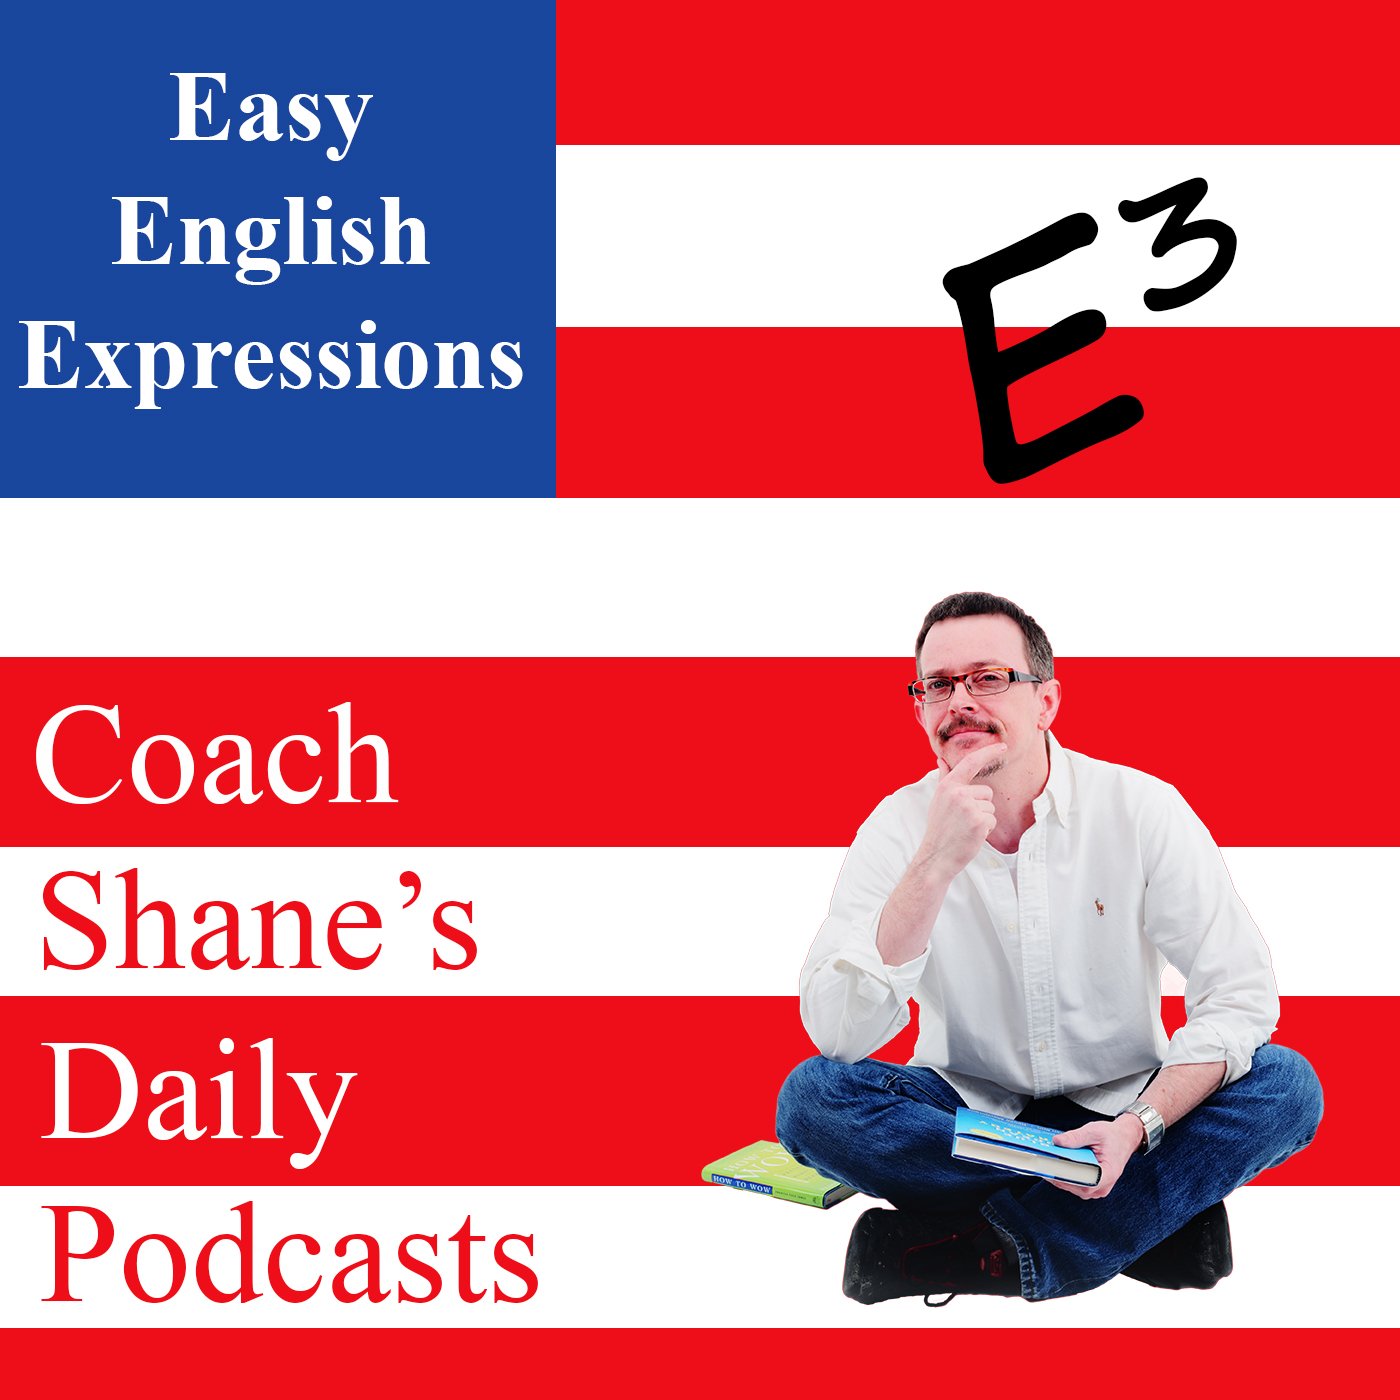 06 Daily Easy English Expression PODCAST--I'm into sports.